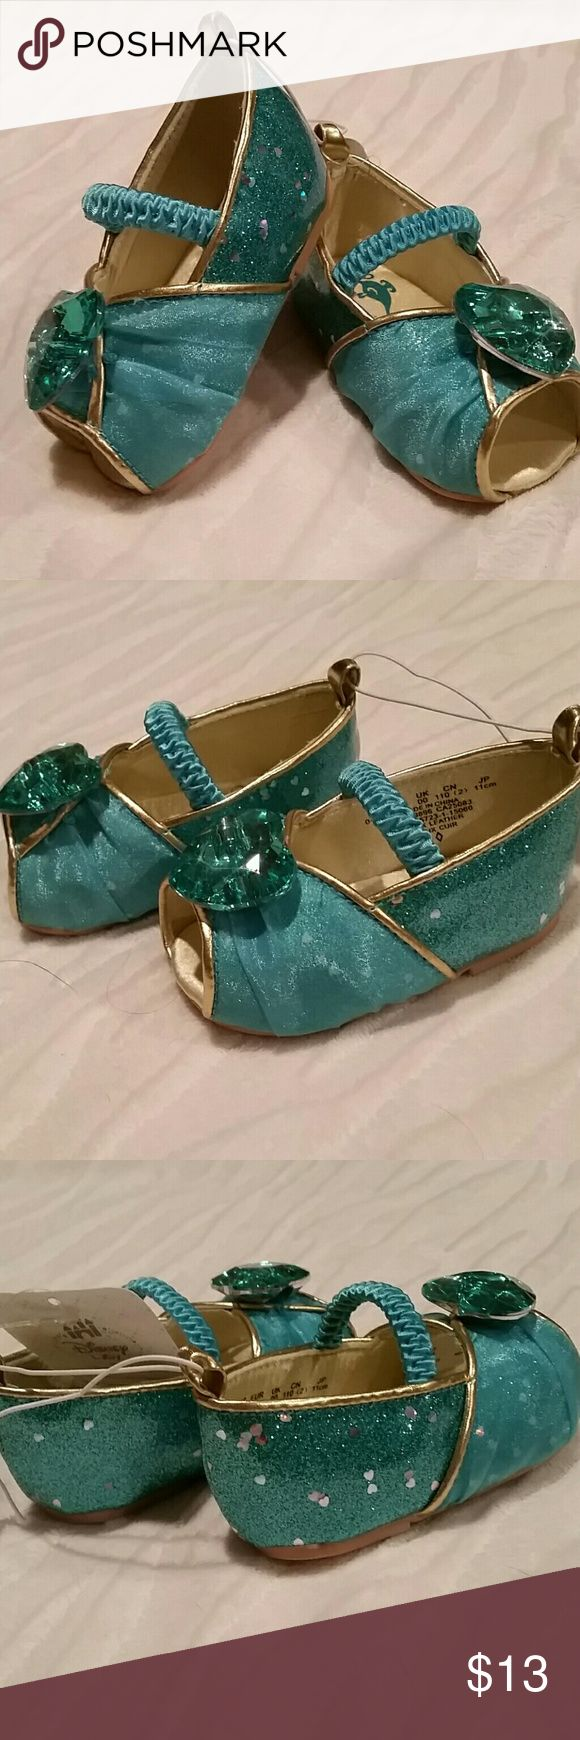 Disney Princess Jasmine Shoes Adorable sparkly turquoise sandals. New with tag. Disney Shoes